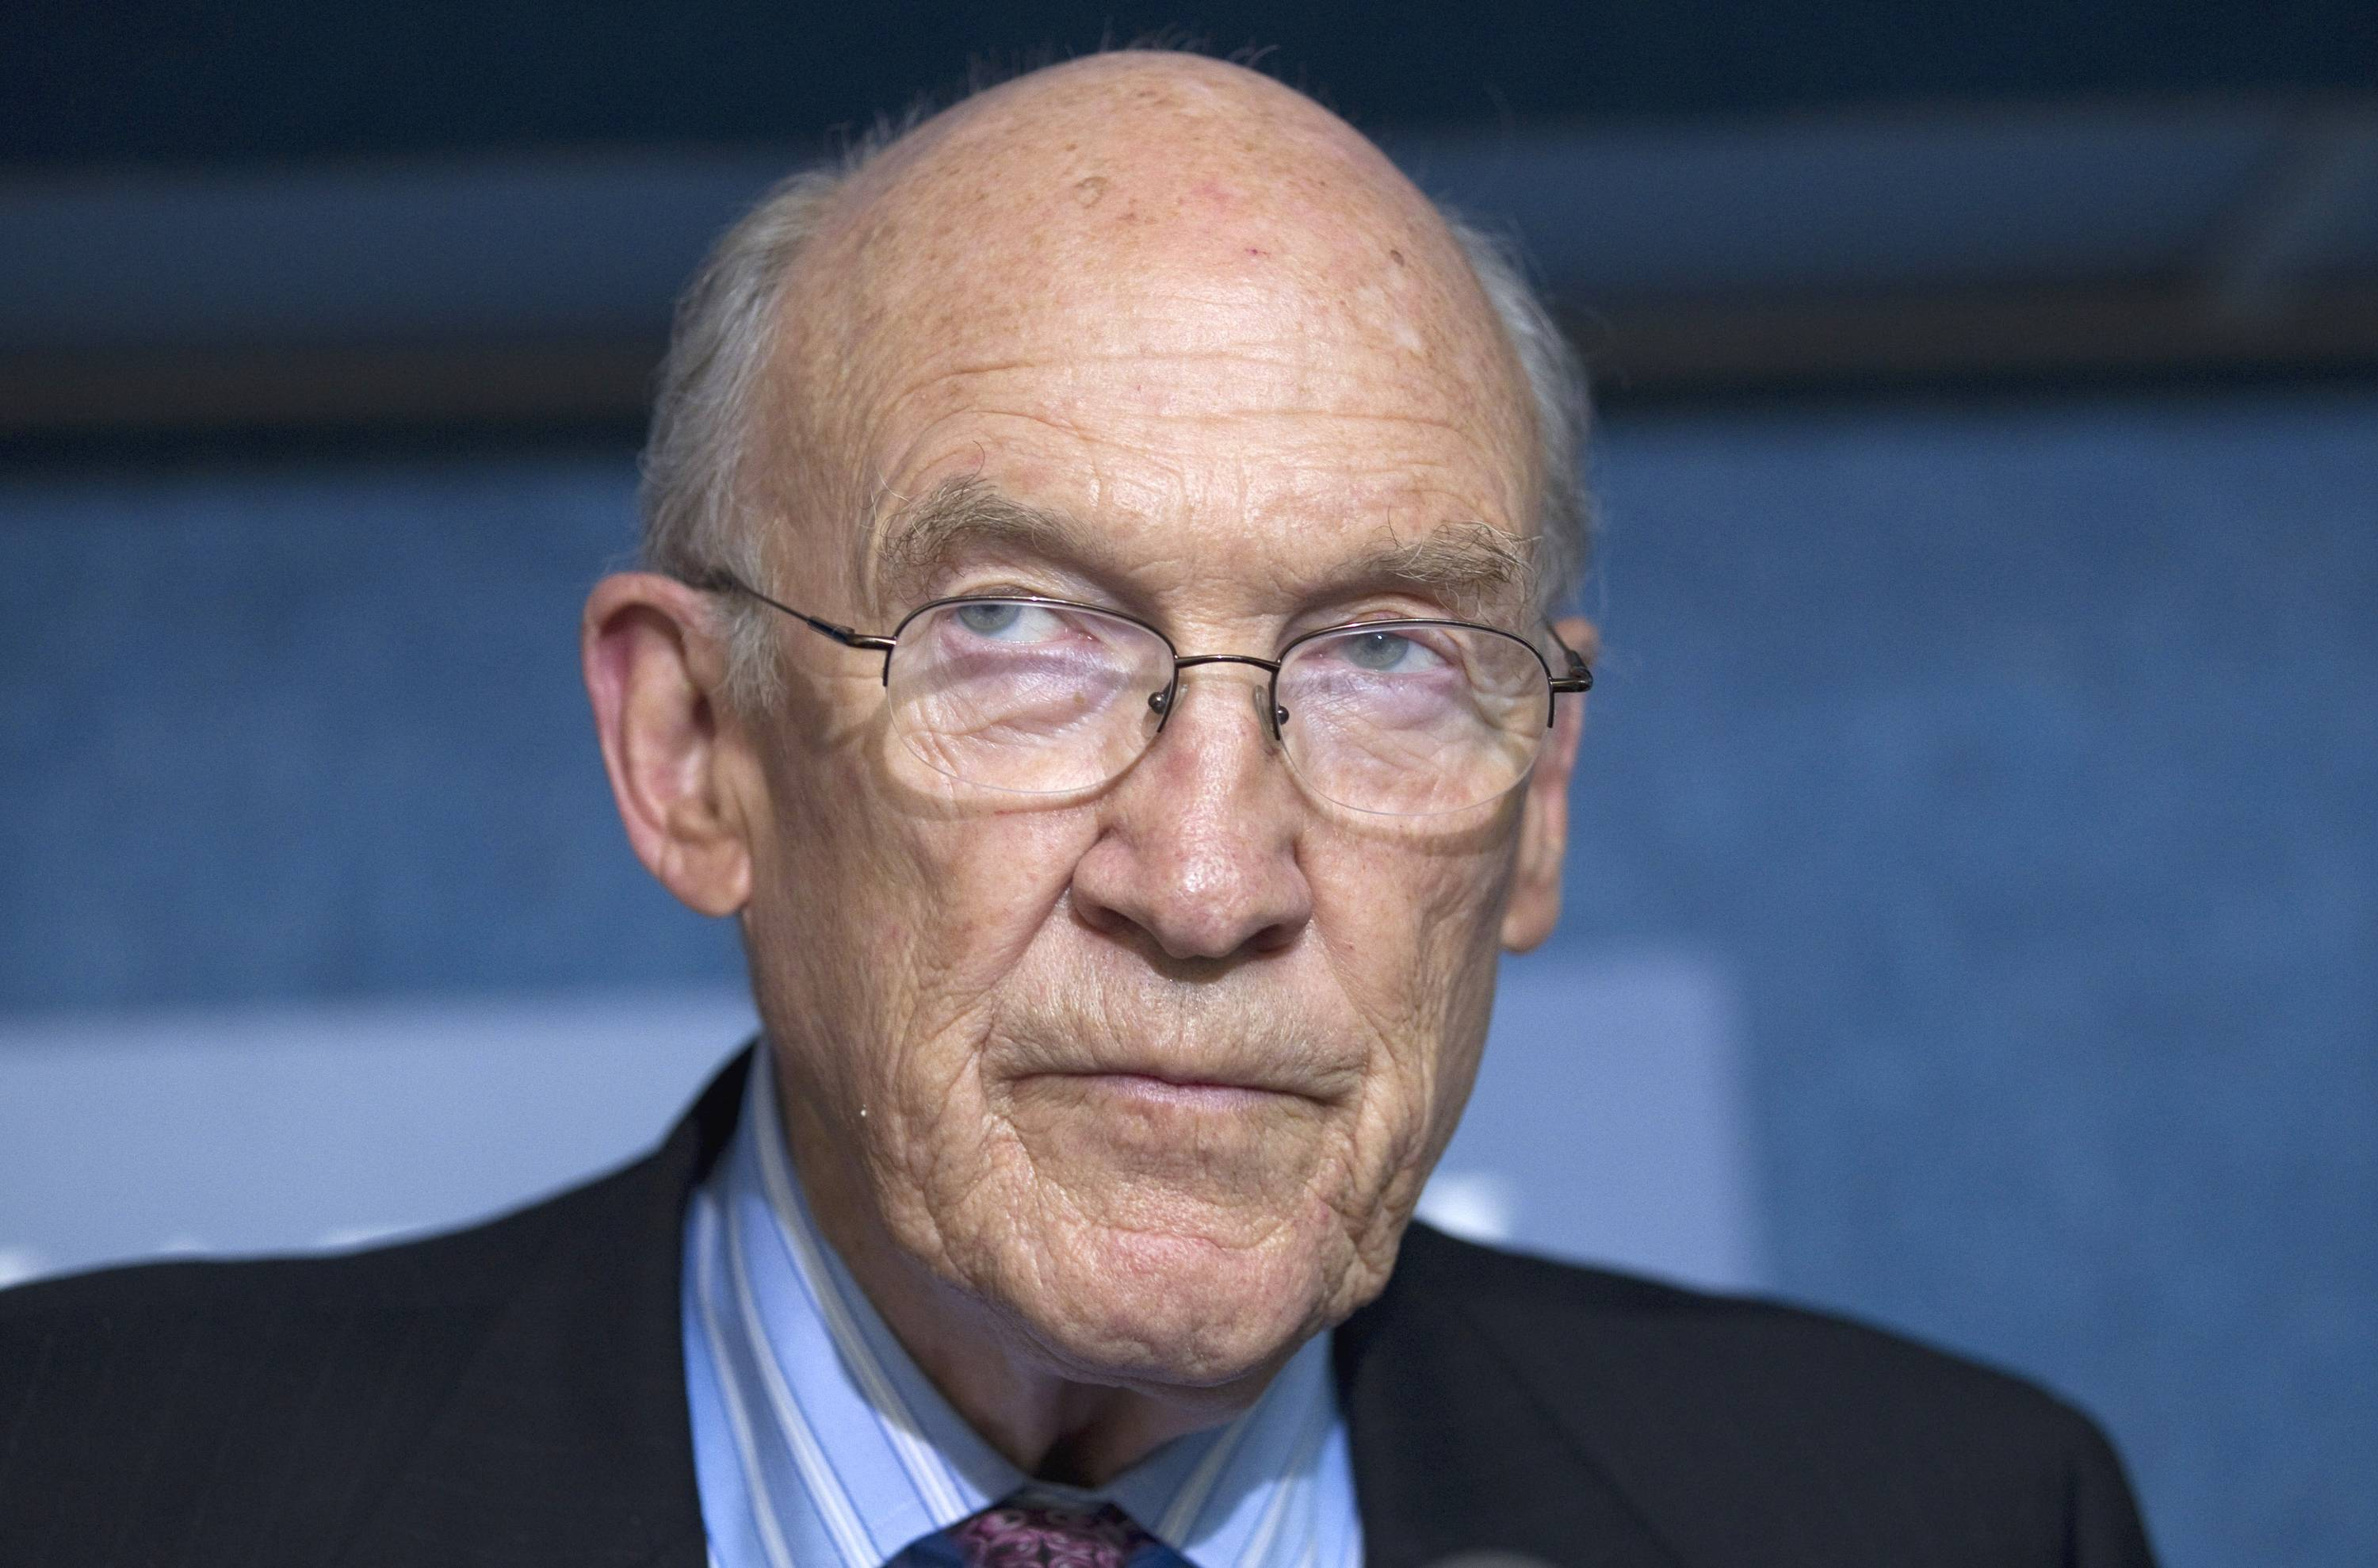 Former U.S. Sen. Alan Simpson from Wyoming is among a group of Republicans who have come out in support of legalizing gay marriage in Utah and Oklahoma, arguing that allowing same-sex unions is consistent with the Western conservative values of freedom and liberty once championed by Ronald Reagan and Barry Goldwater.